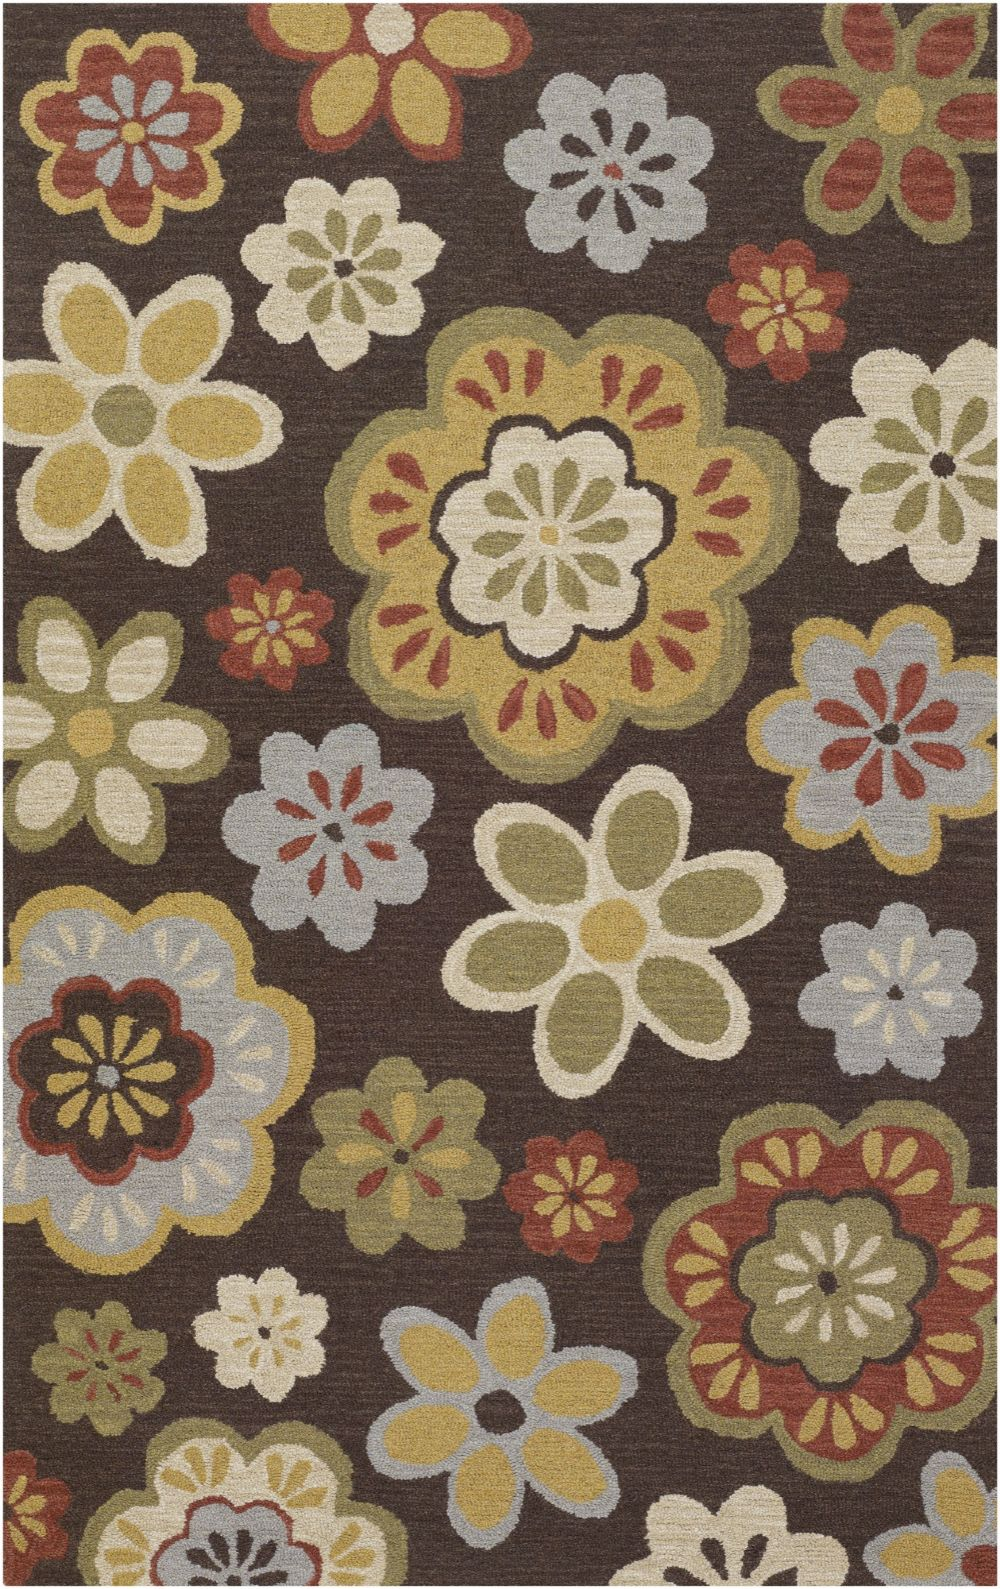 surya foundation country & floral area rug collection